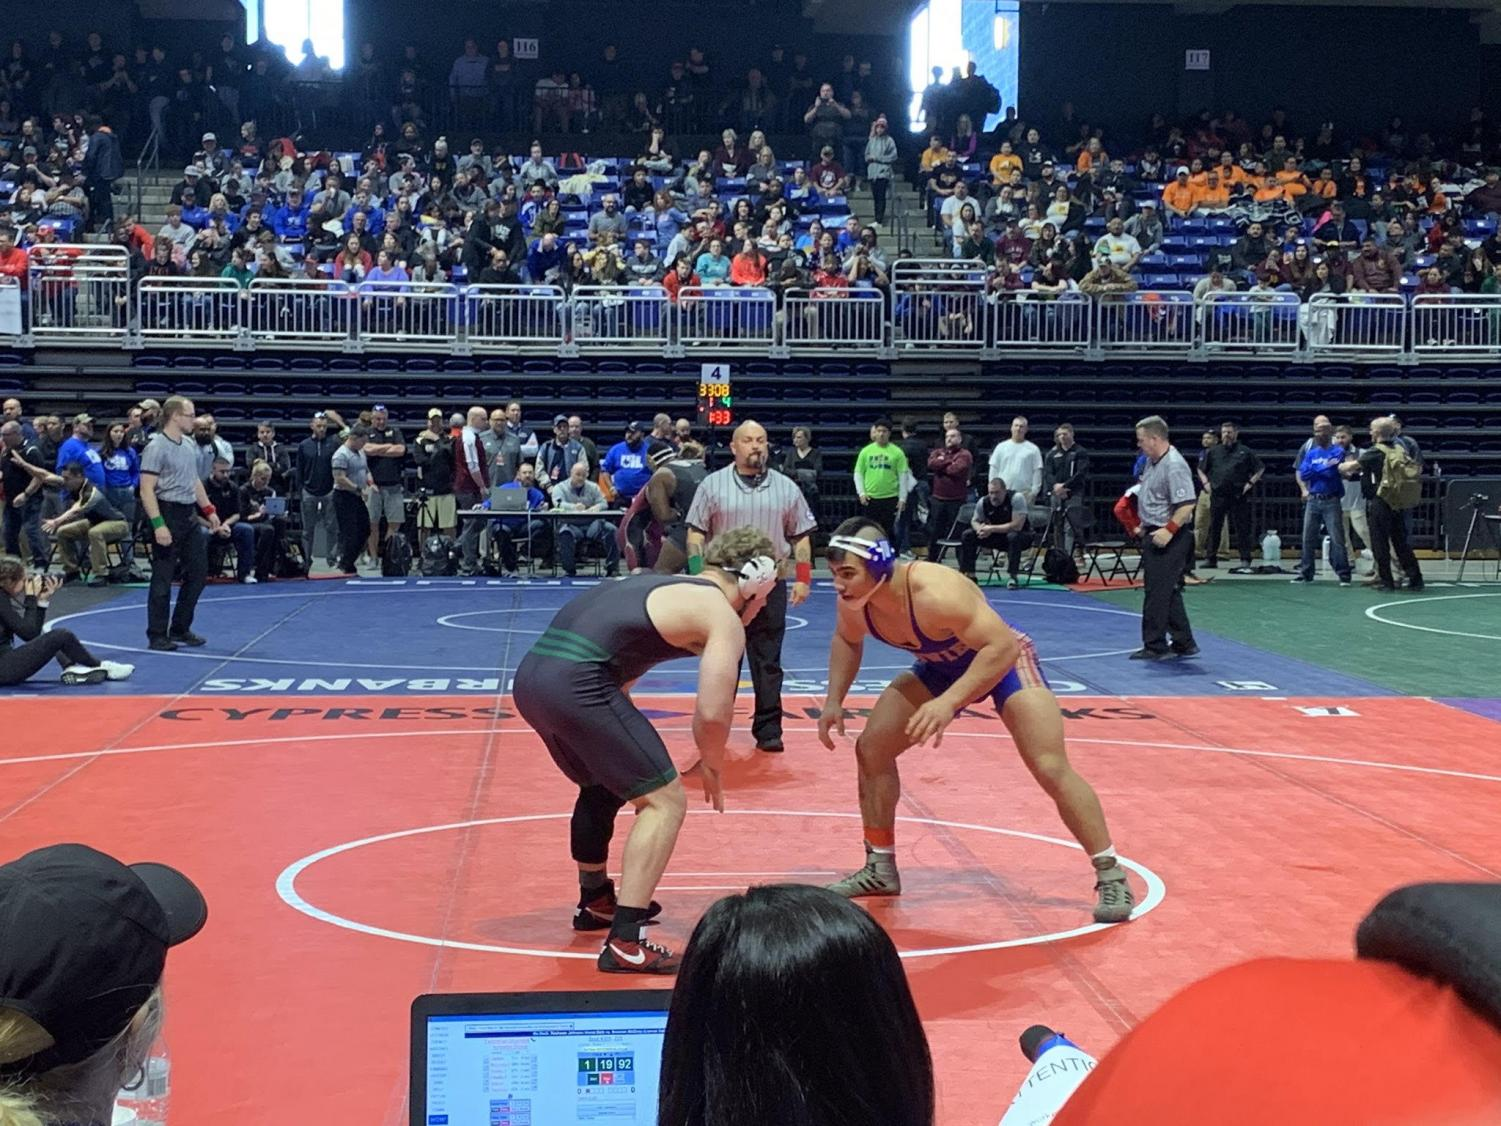 """Senior Rylan Bonds wrestles his opponent during the competition for the state champion title. Bonds wrestles in the 220-pound weight class. """"My motivation was to just come back and prove I could be there,"""" Bonds said. """"Even though I had gotten hurt, I could still wrestle. When I won state, it felt like it was a dream almost, it took me a couple of days to realize I actually won."""""""